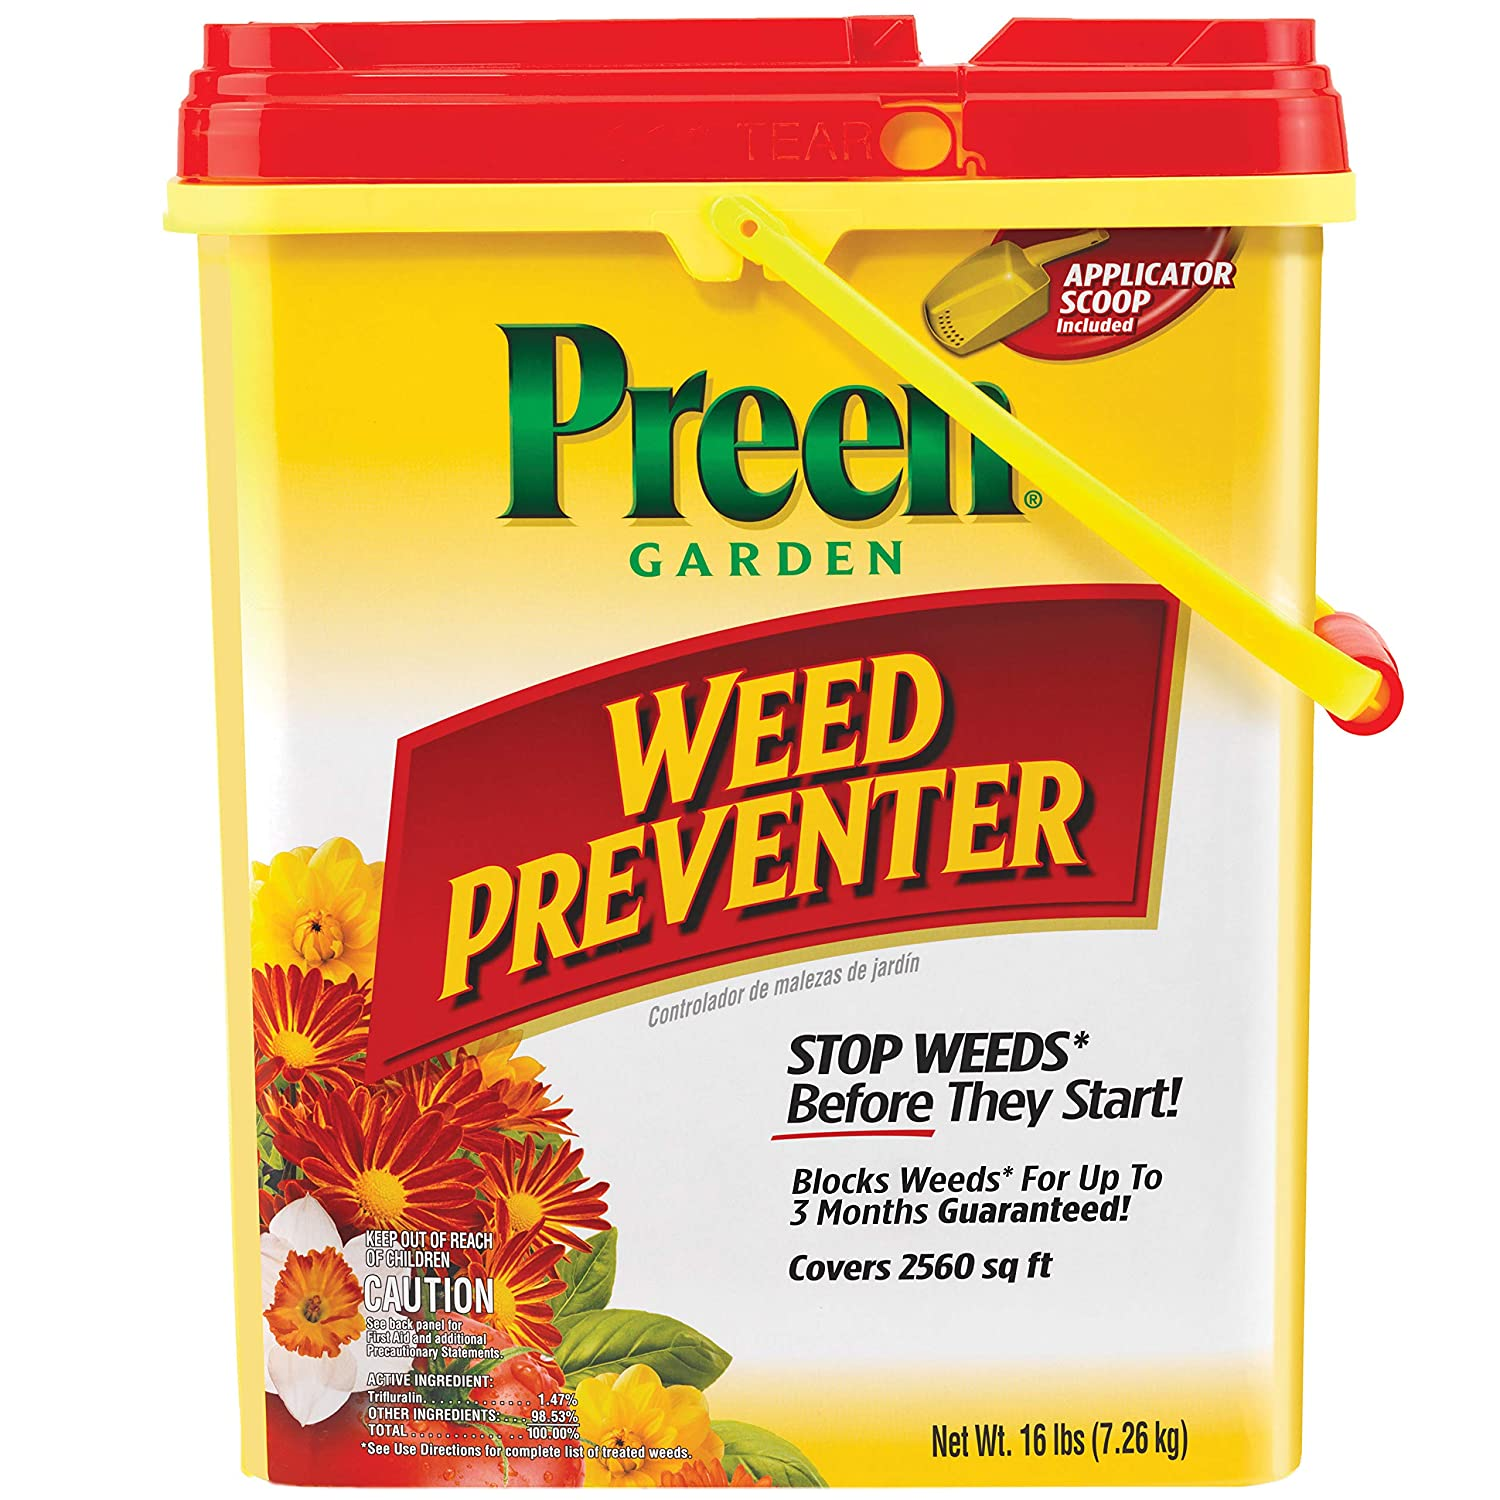 Preen 2464127 Garden Weed Preventer, 16 lb. Covers 2,560 sq. ft